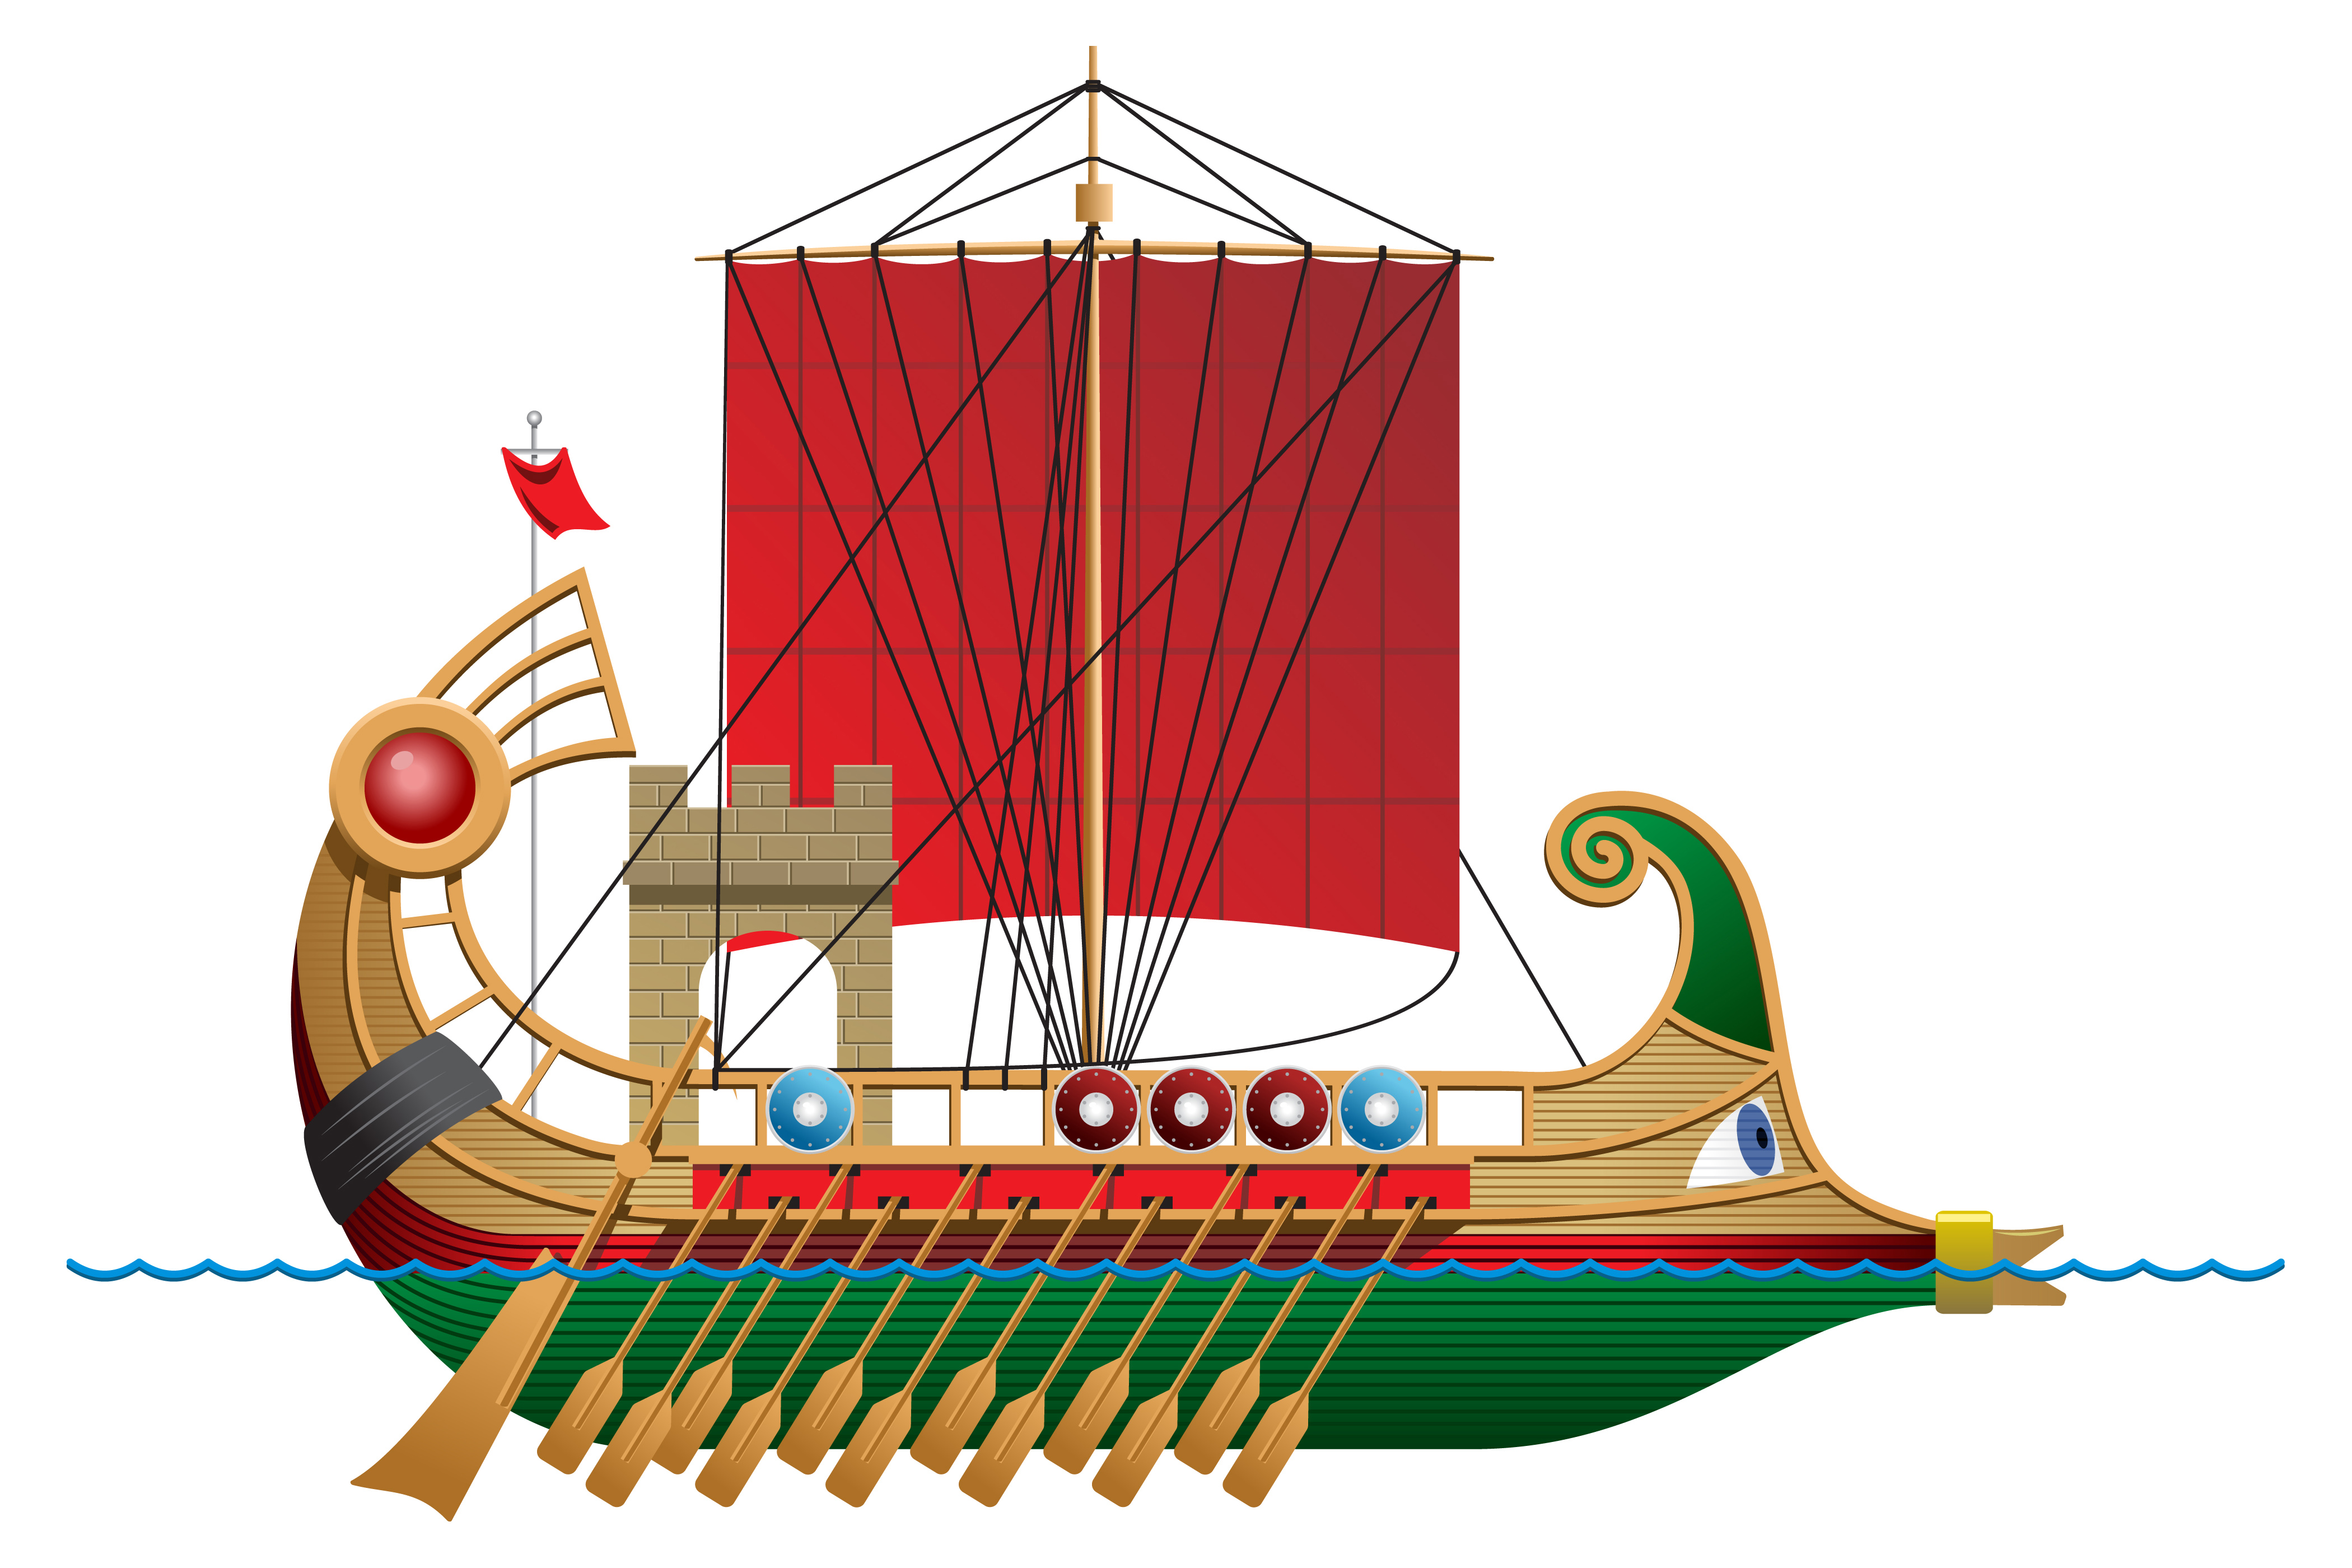 Ancient Roman Galley depicting the Rostrum